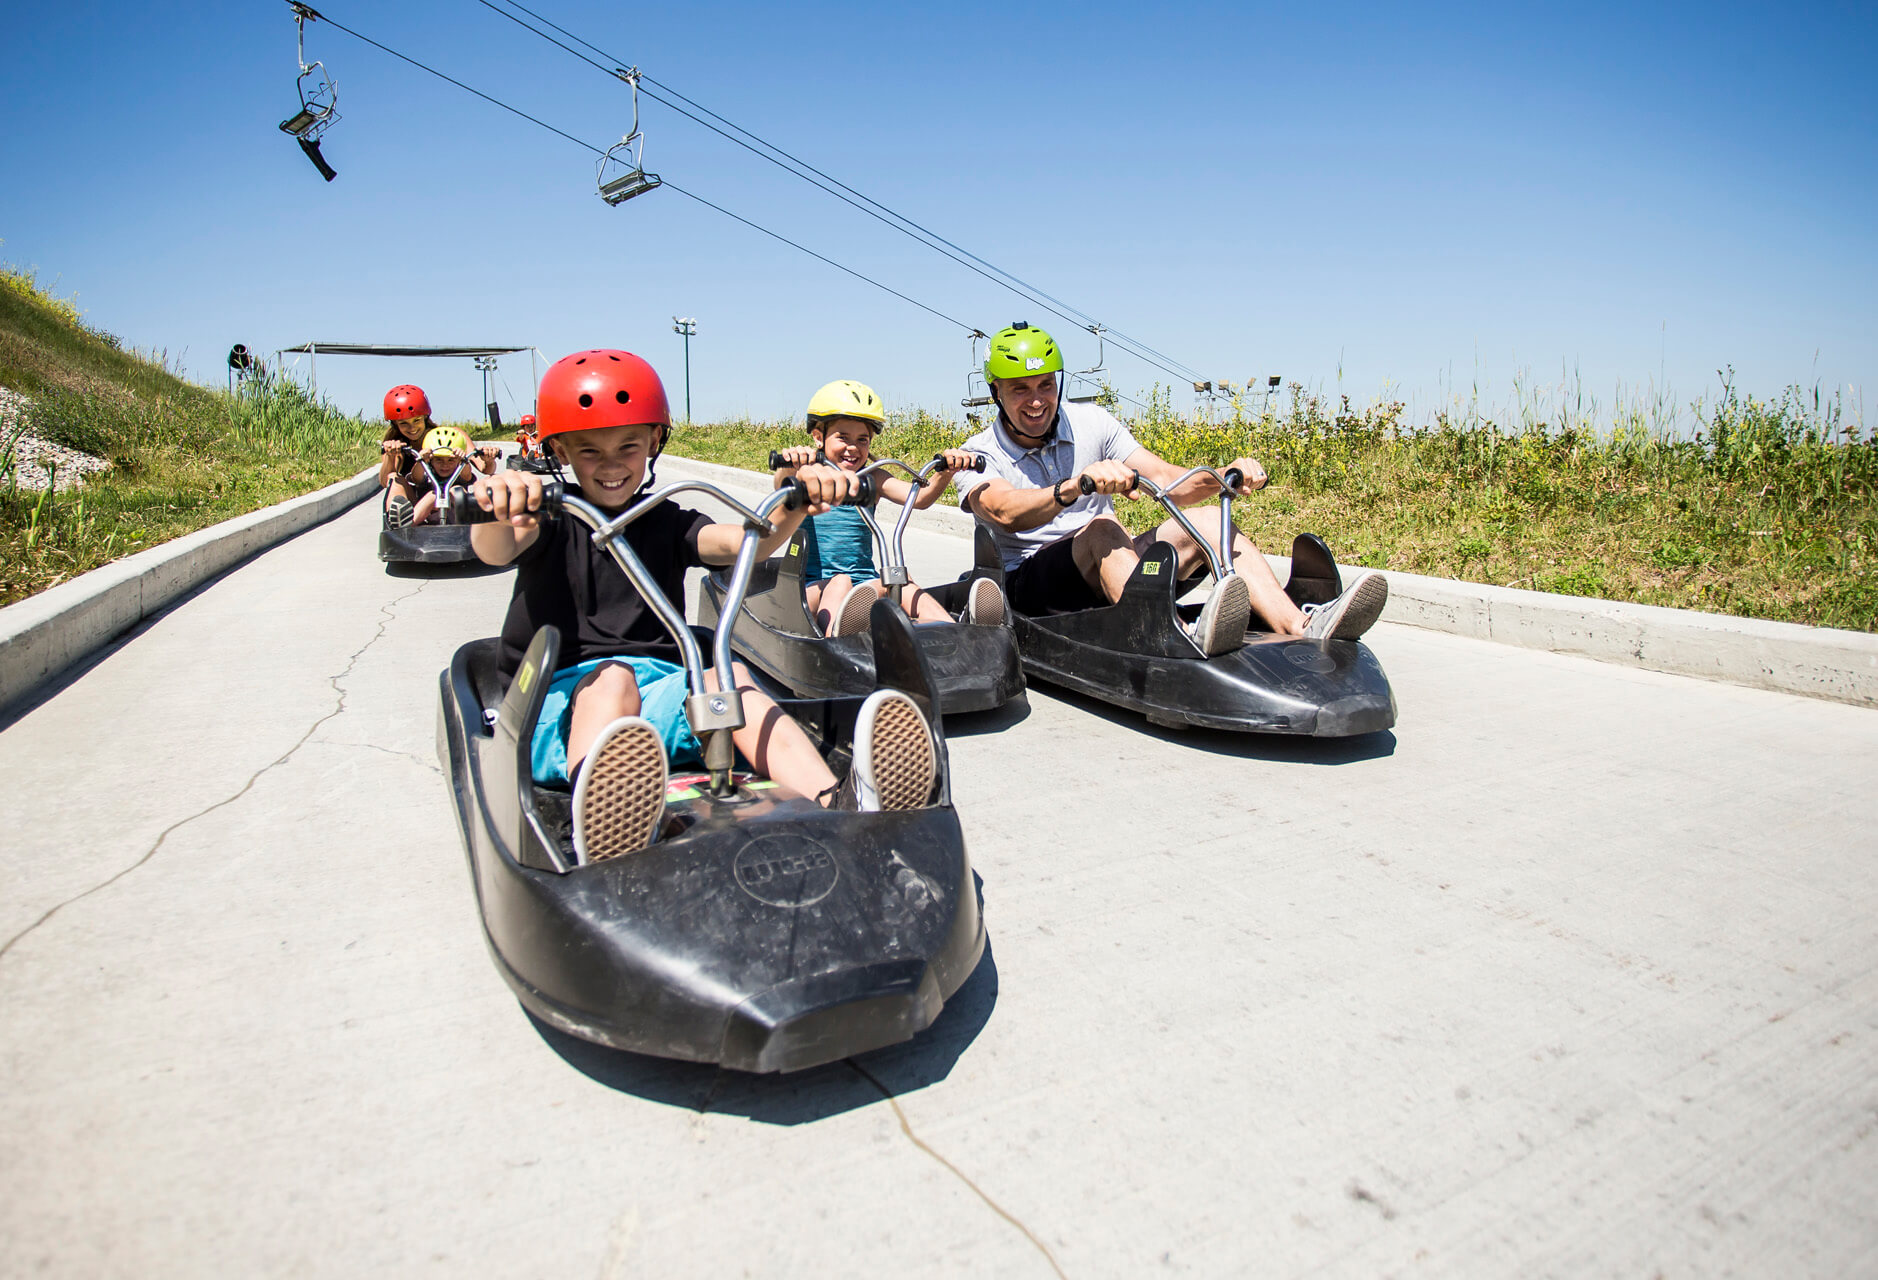 A family rides their downhill karts next to each other as they descend the tracks at Skyline Luge Calgary.